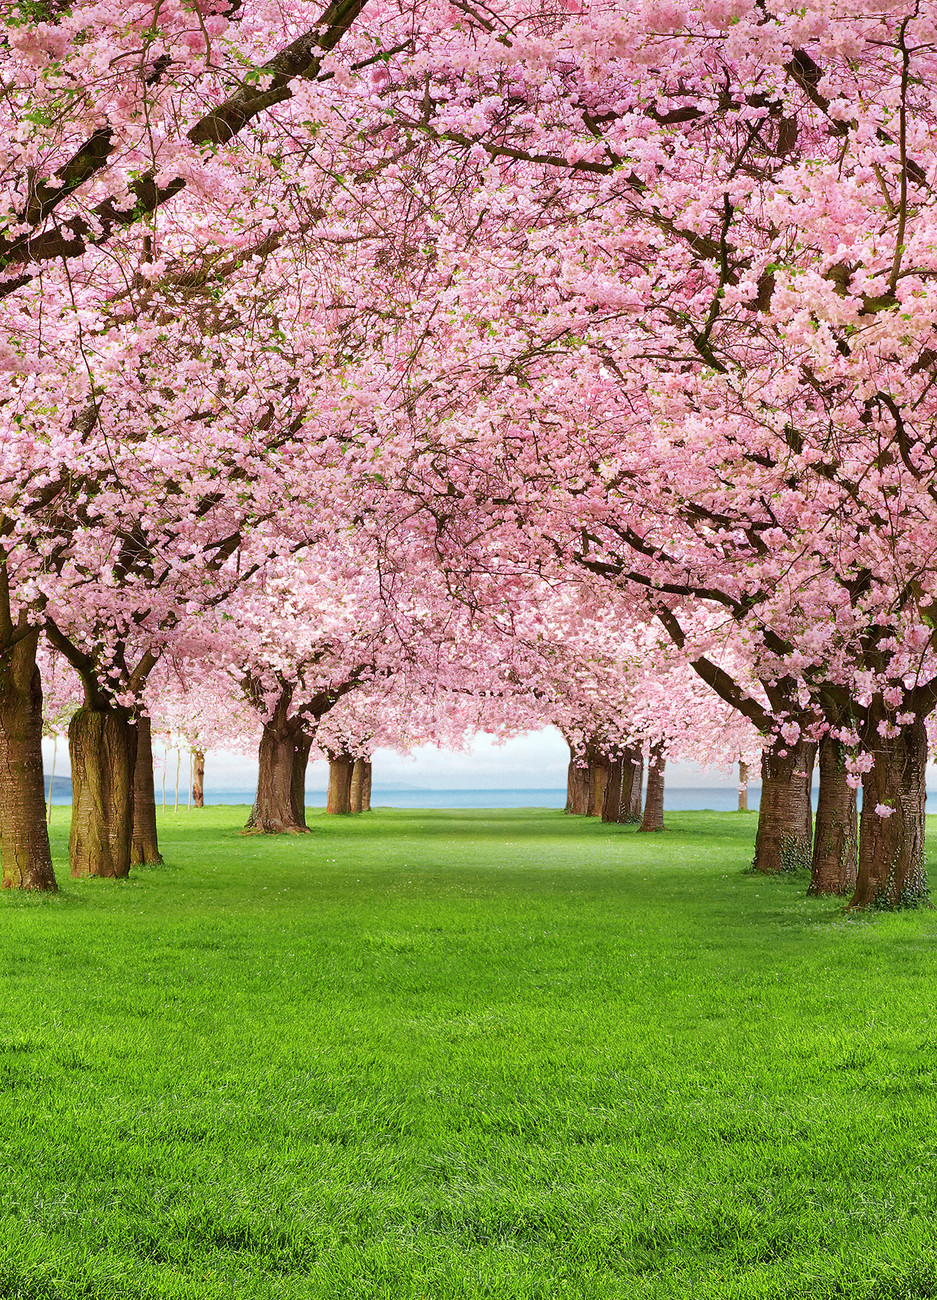 Cherry trees wall mural buy at europosters for Cherry tree mural